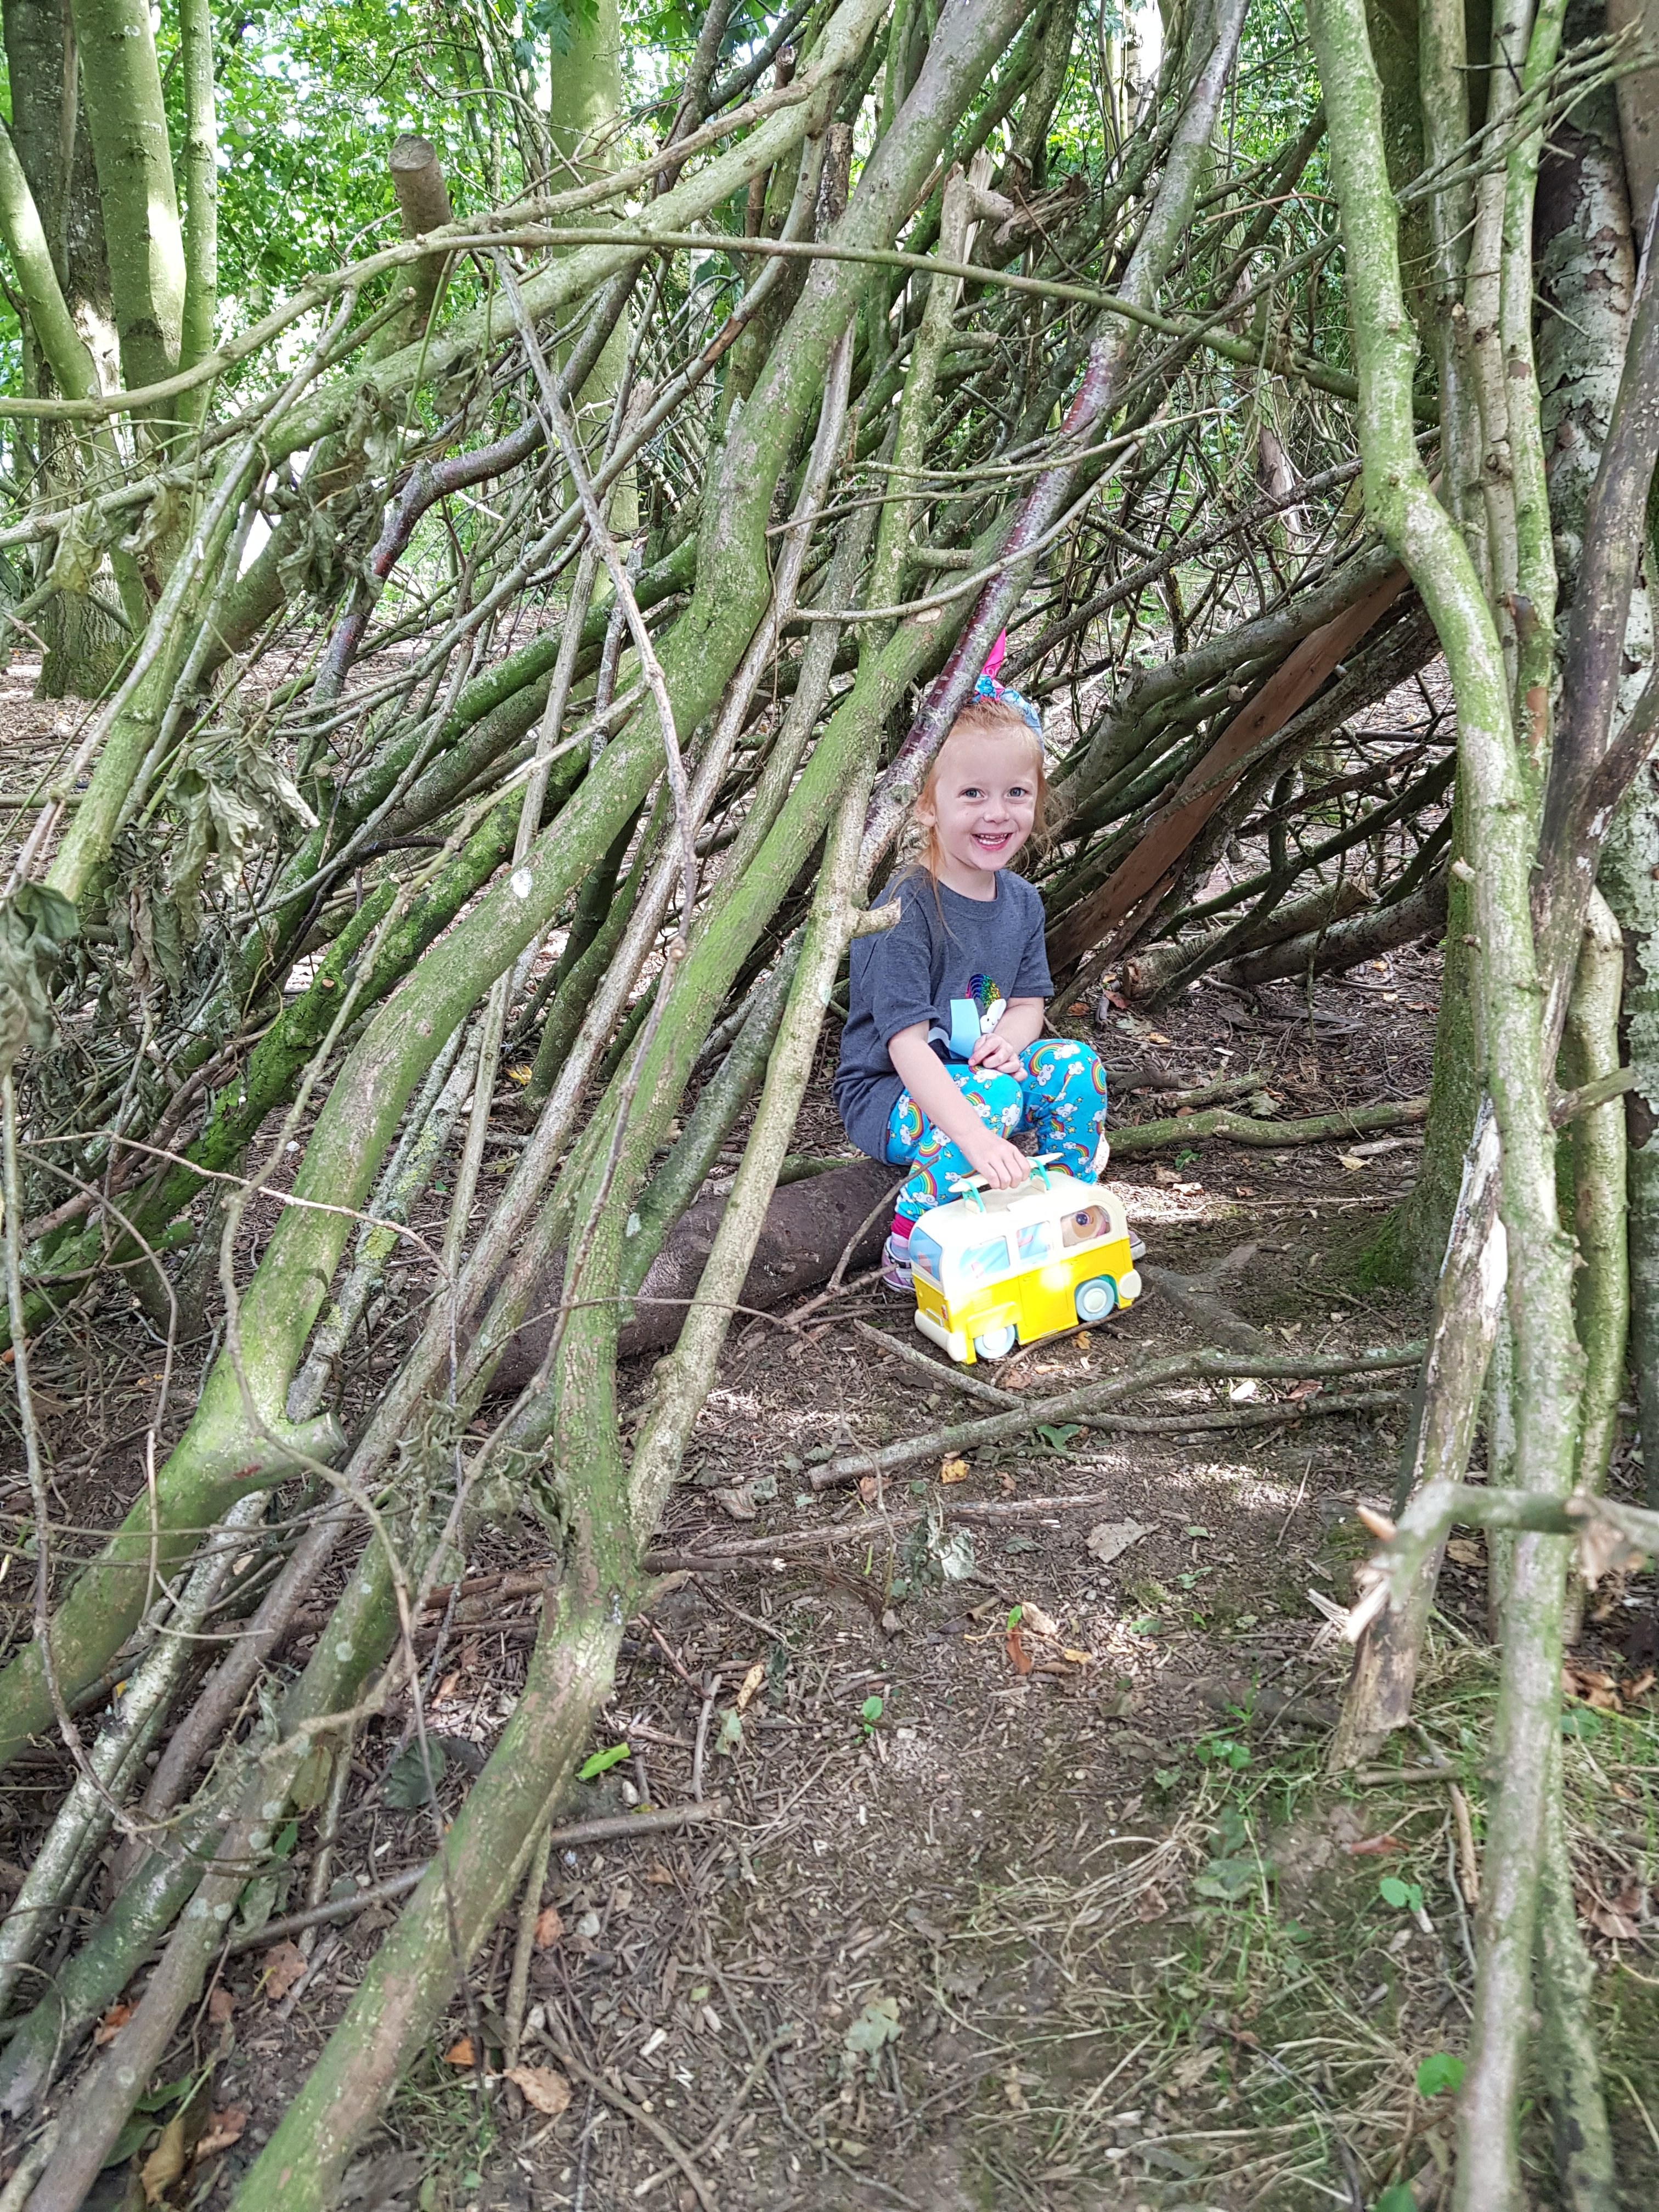 More woodland dens!